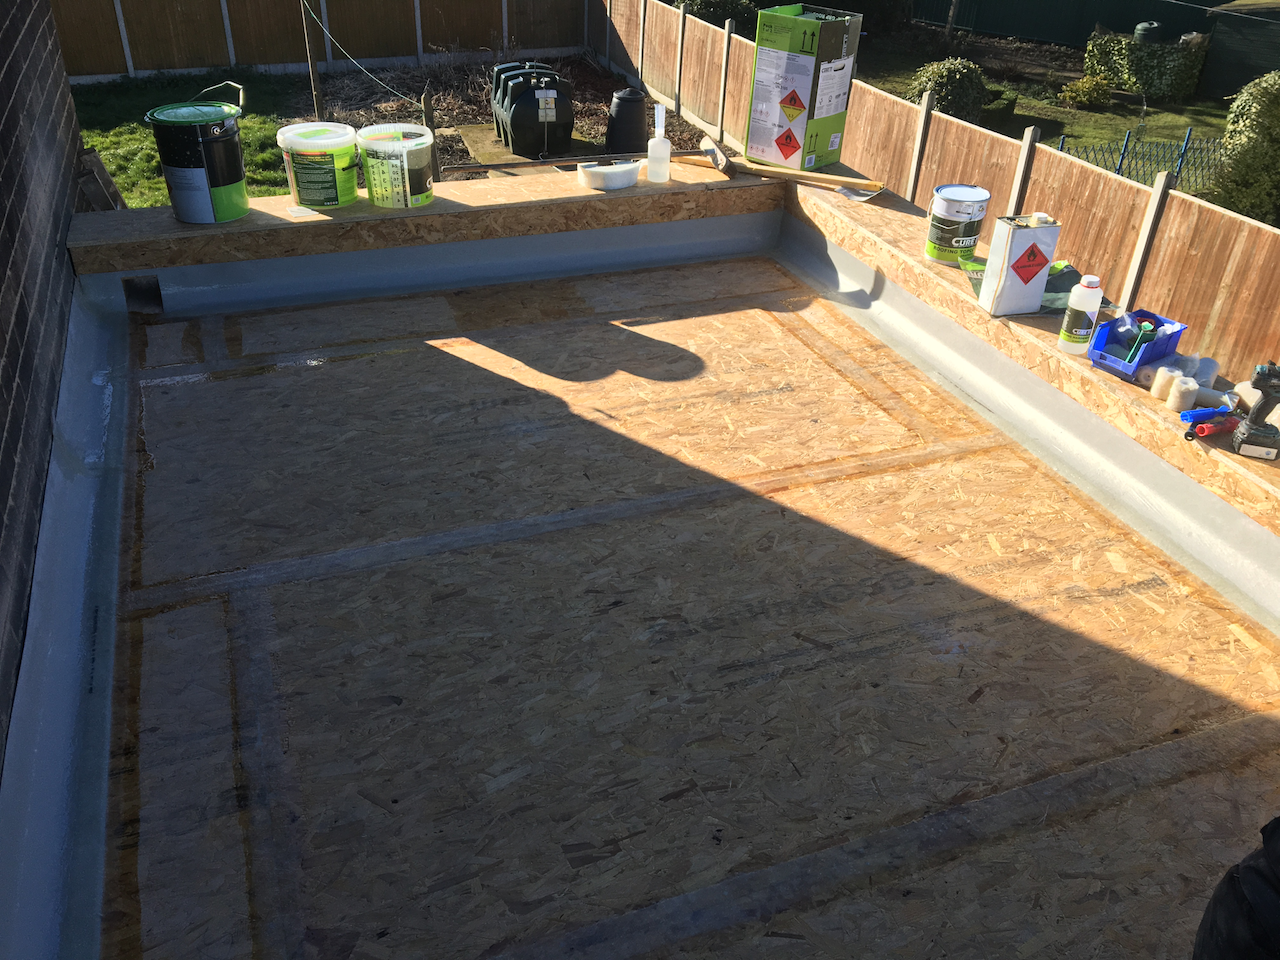 https://www.bluedotroofing.uk/wp-content/uploads/2018/02/grp-flat-roof-marton-lincolnshire-6.png